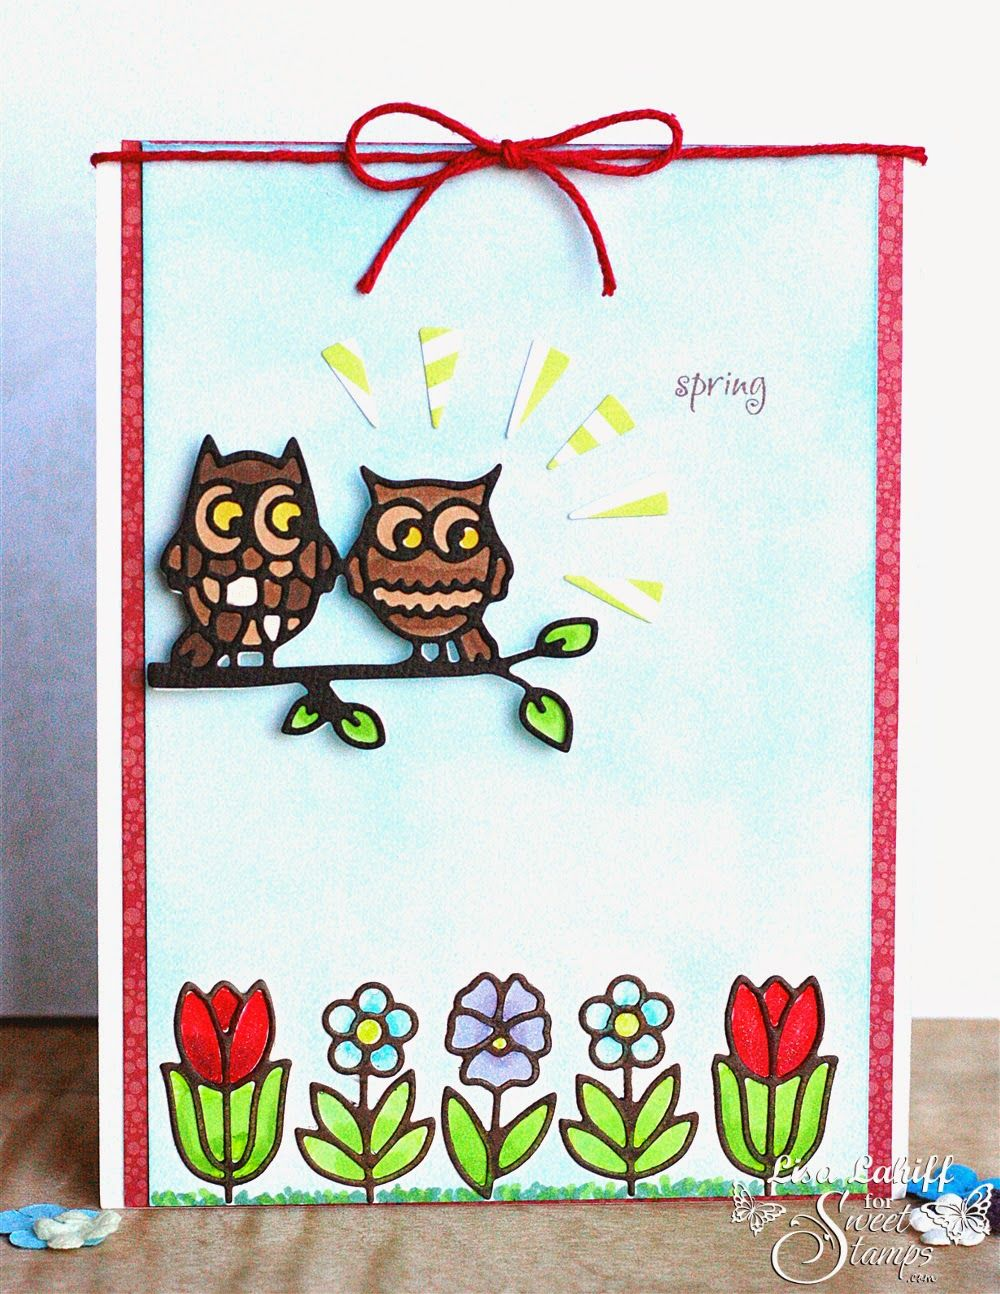 SweetStamps challenge 4/1/14 Use Dies; DT Lisa